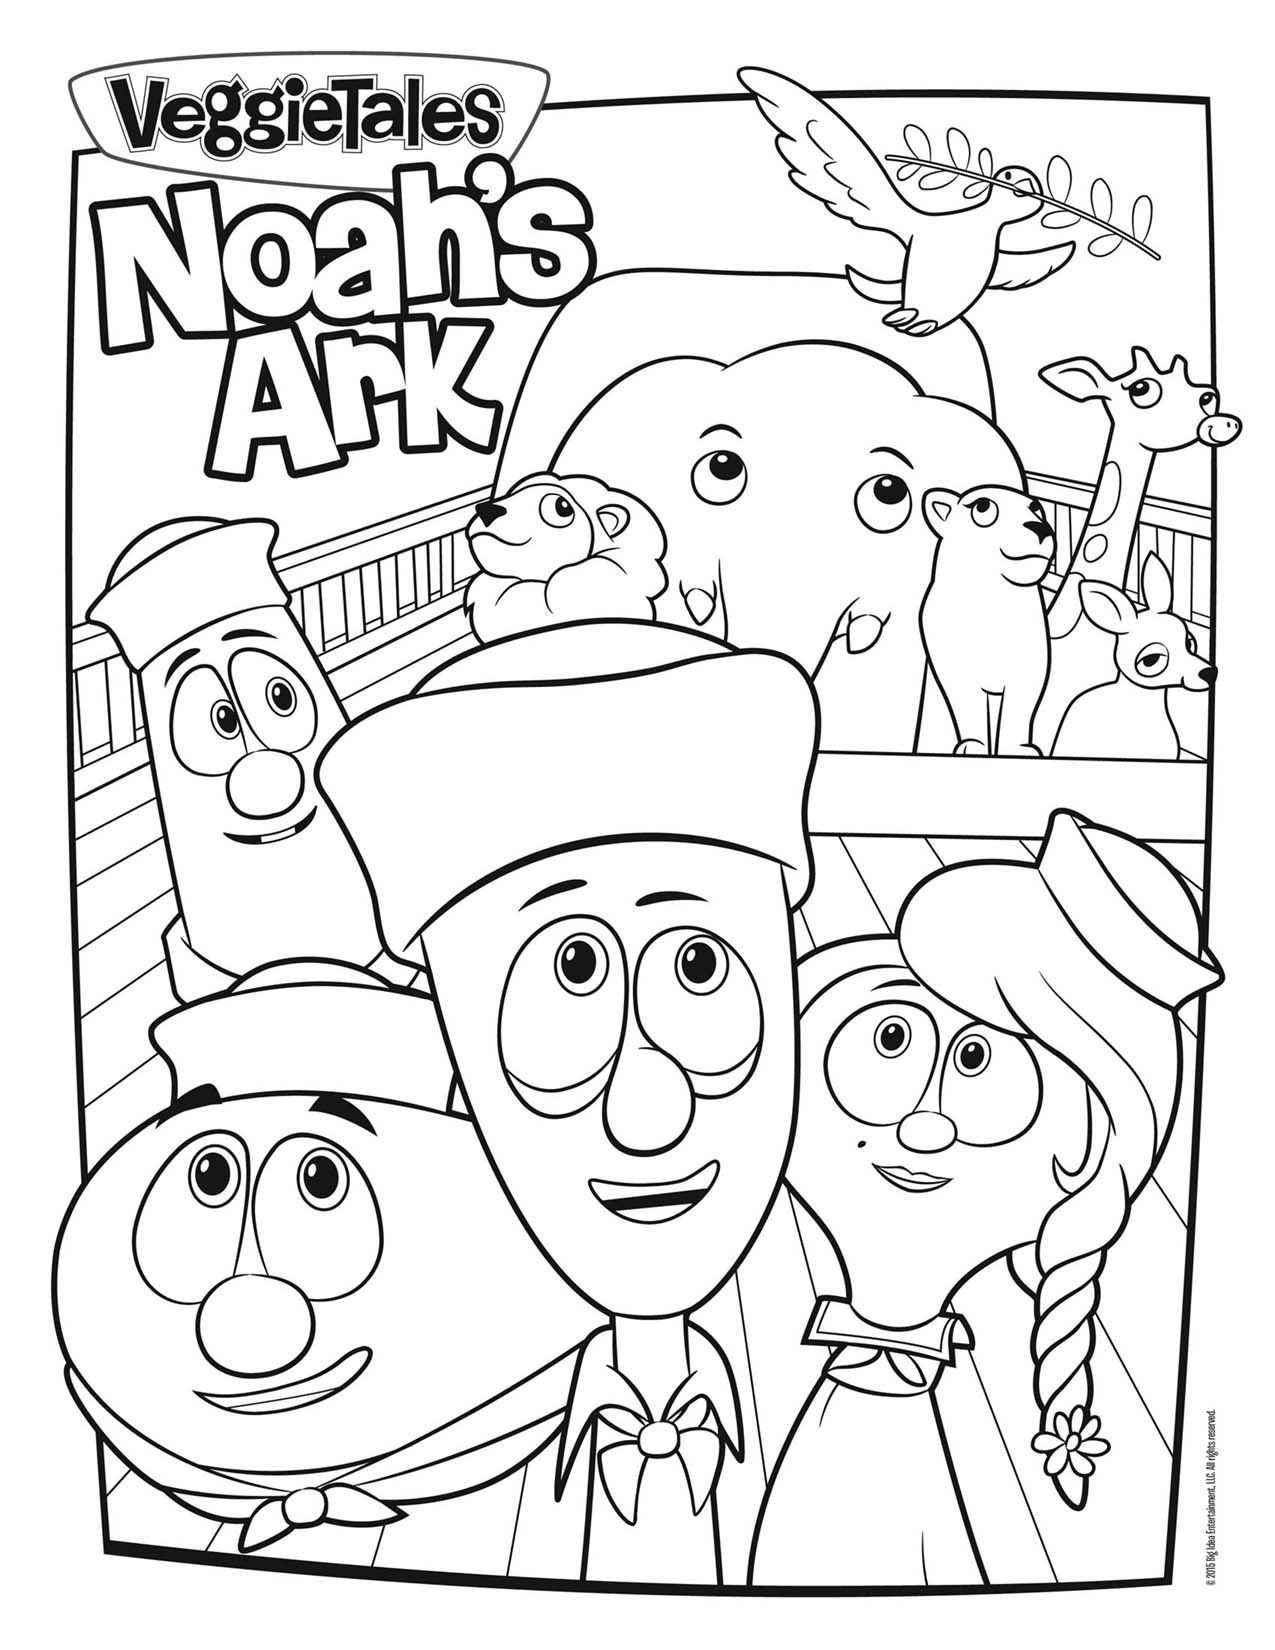 Free Printable Veggie Tales Coloring Pages For Kids Bible Coloring Pages Coloring Books Kids Coloring Books